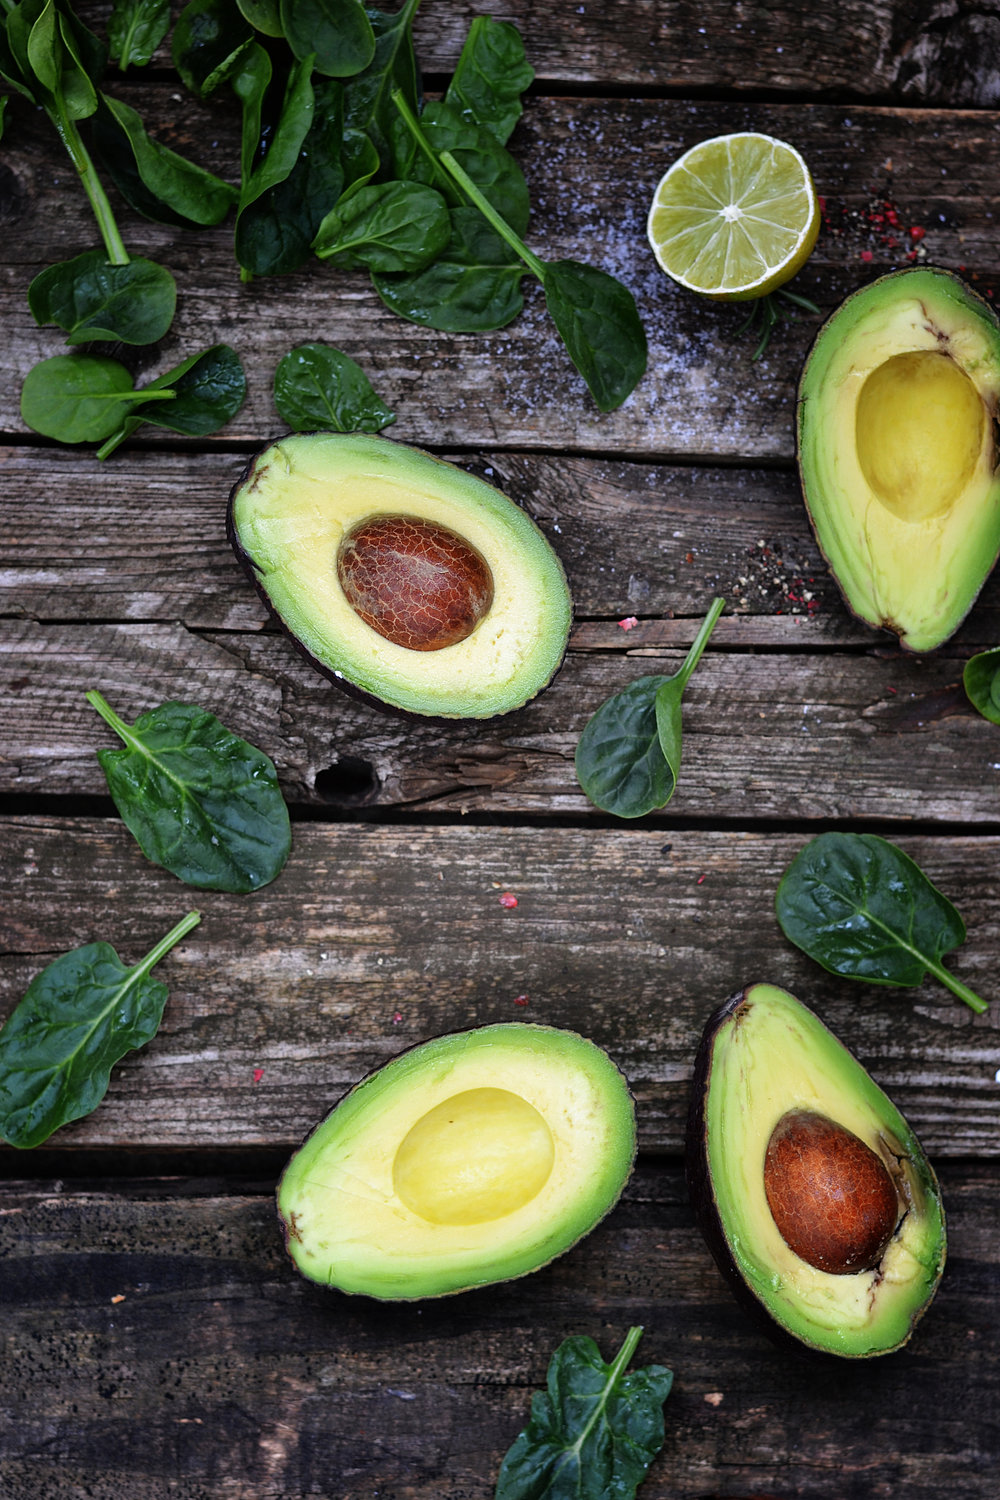 Avocado oil known to be the most moisturizing of any fruit oil. It helps to restore the natural moisture of the skin.